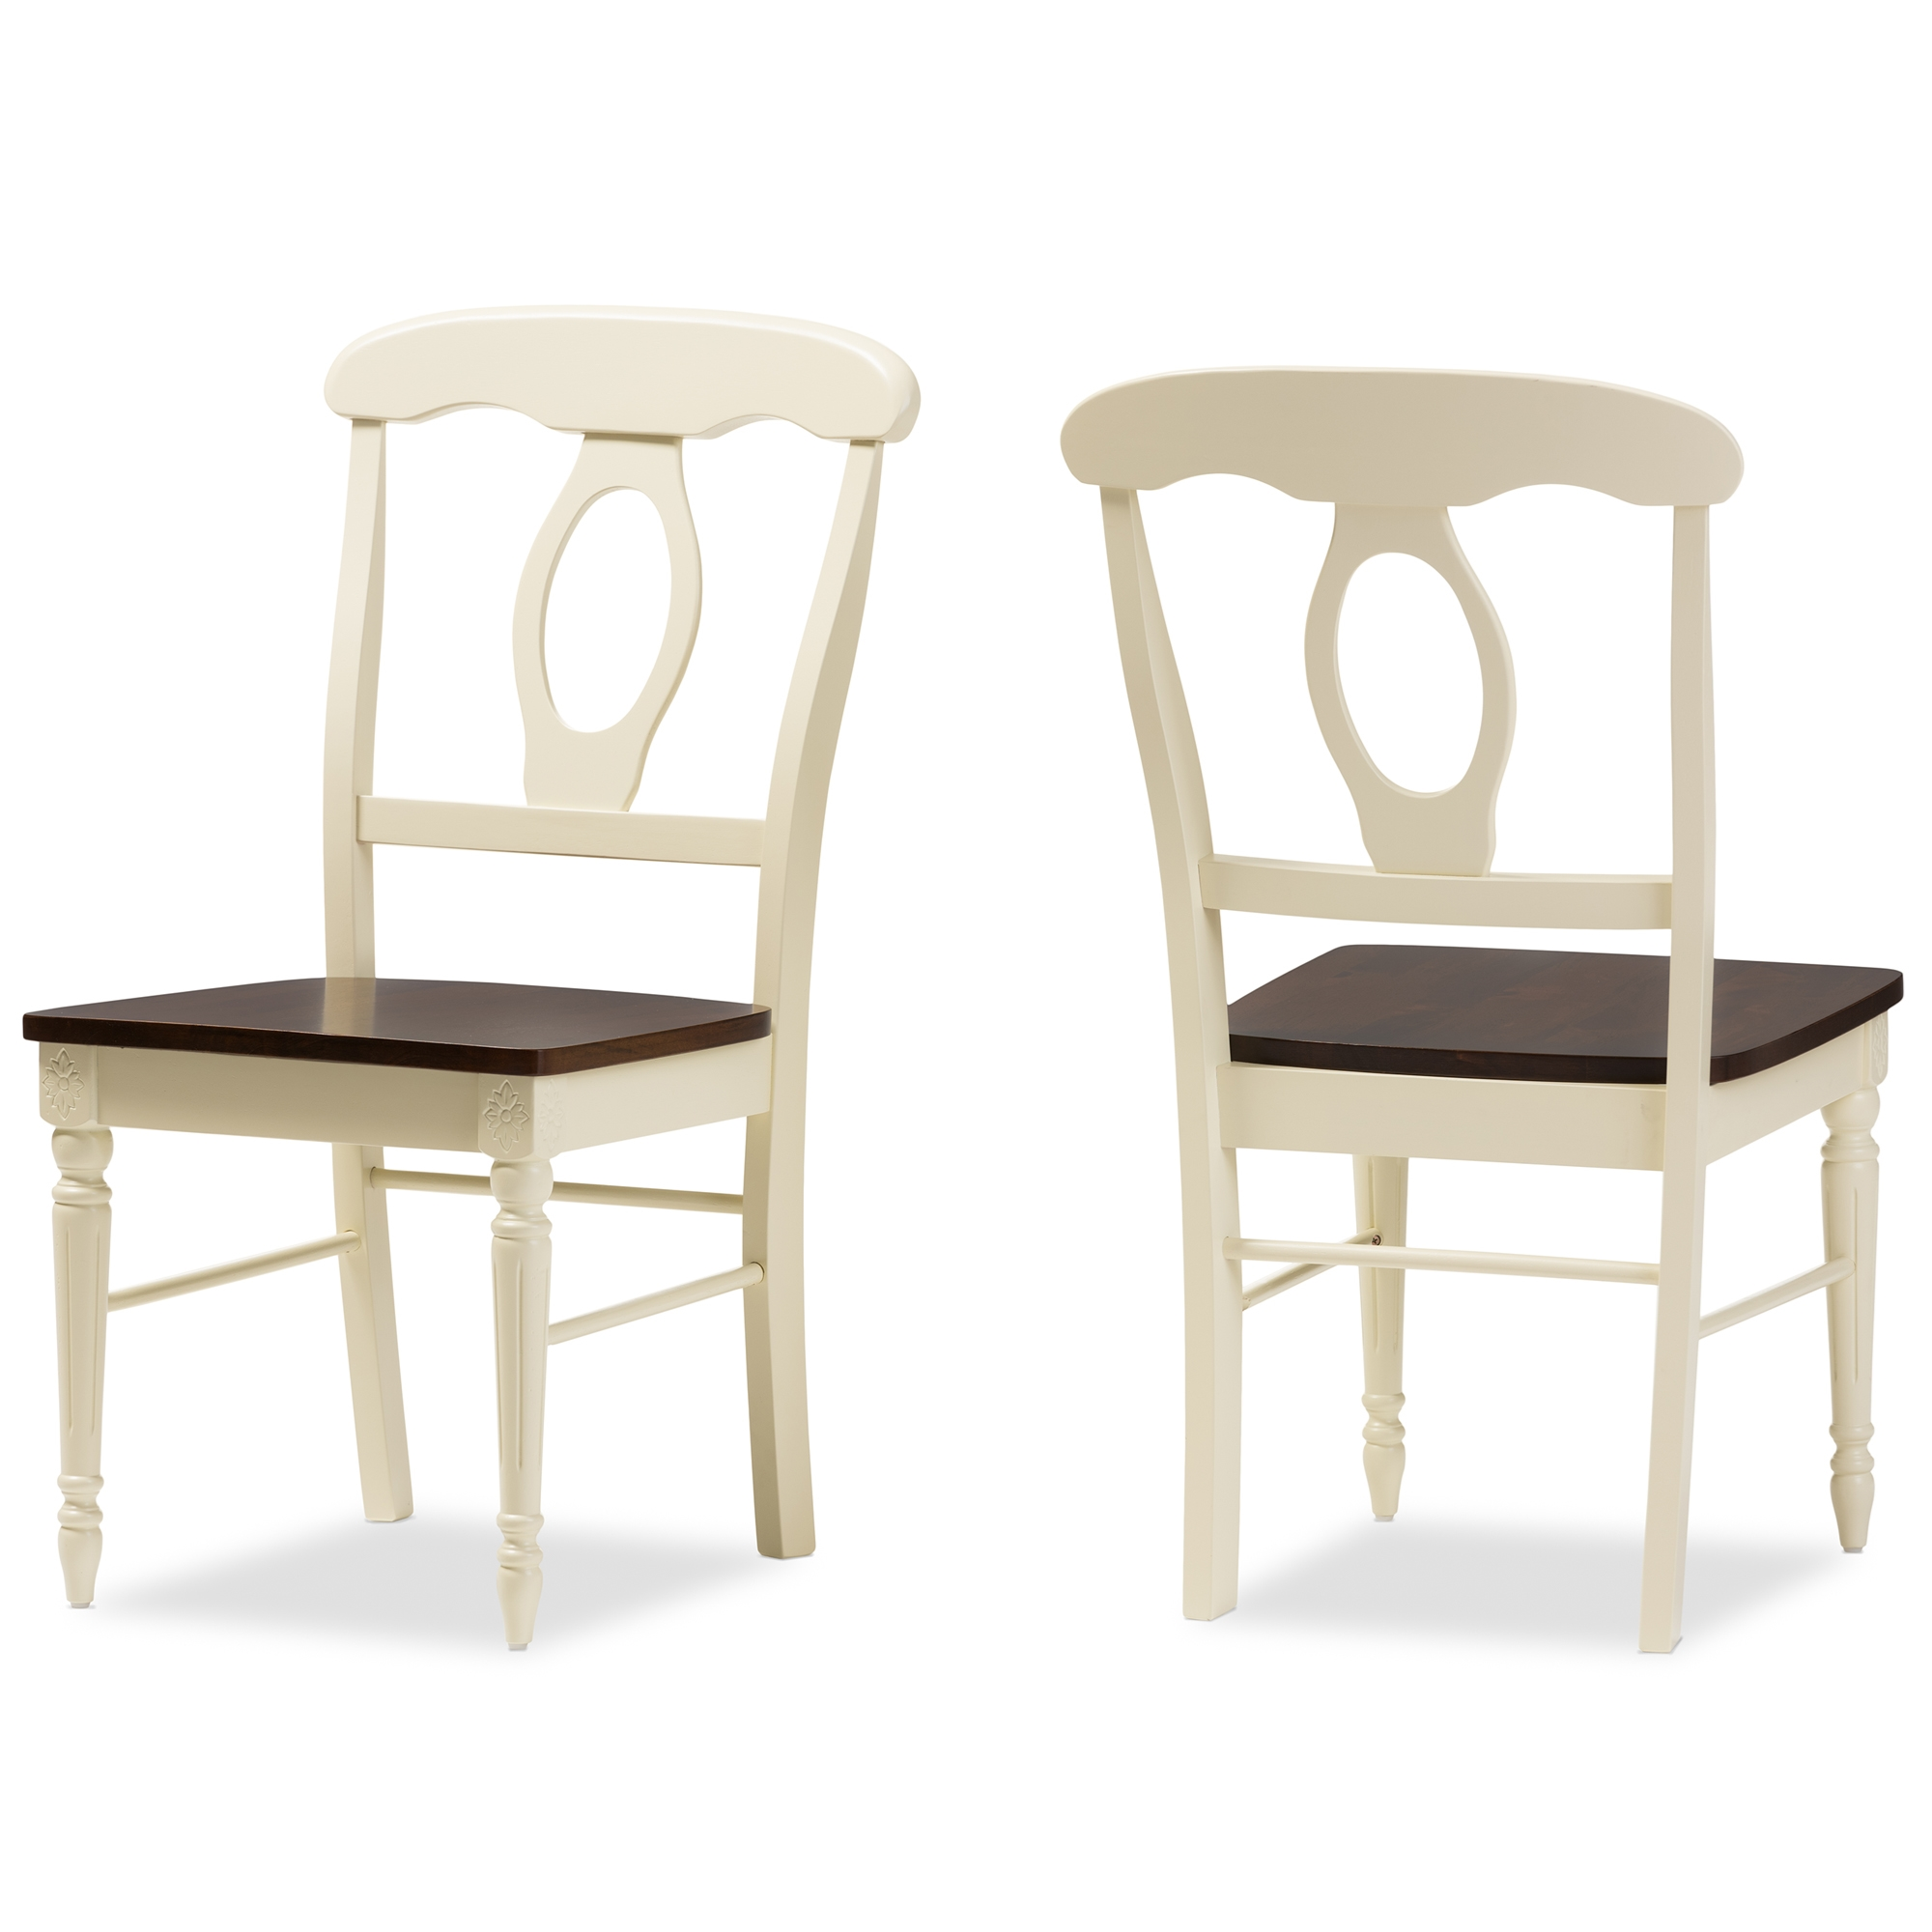 baxton studio wholesale dining chairs wholesale dining room furniture wholesale furniture